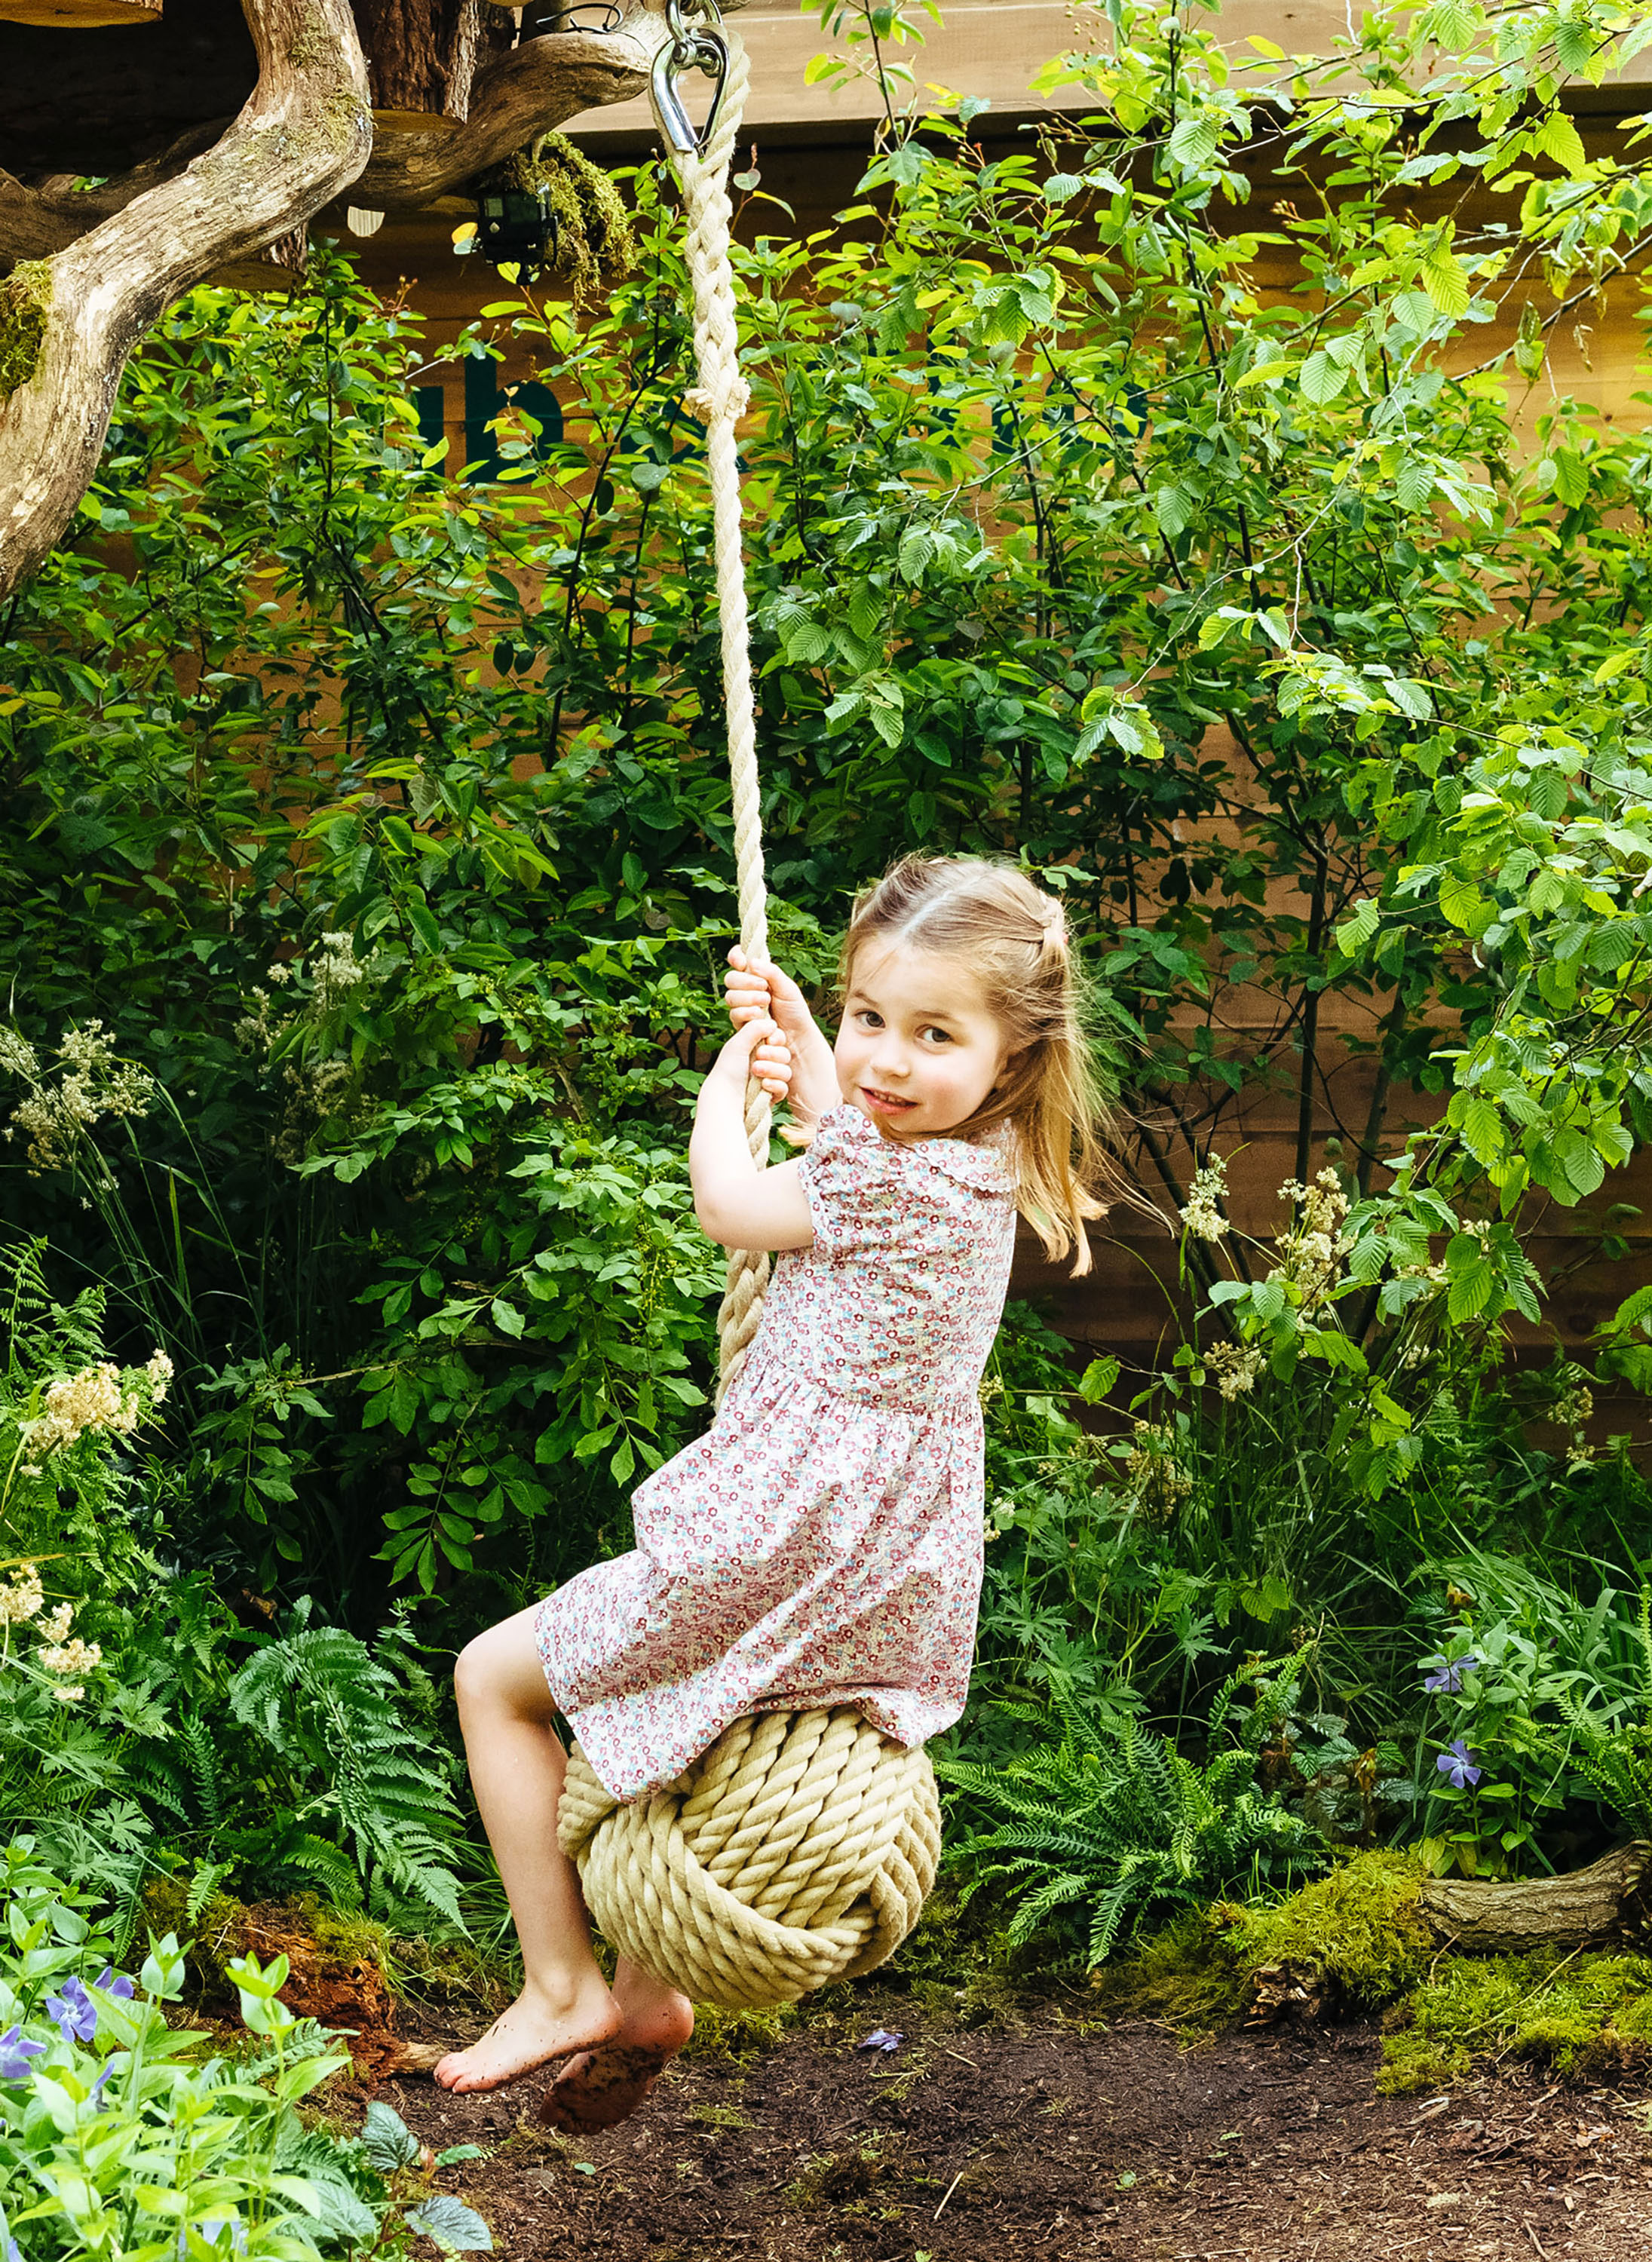 Prince William, Duchess Kate and Kids Play in the Garden She Designed at Chelsea Flower Show - Charlotte channeled her inner Miley Cyrus in a pose similar to one her mom took in photos released on Saturday.